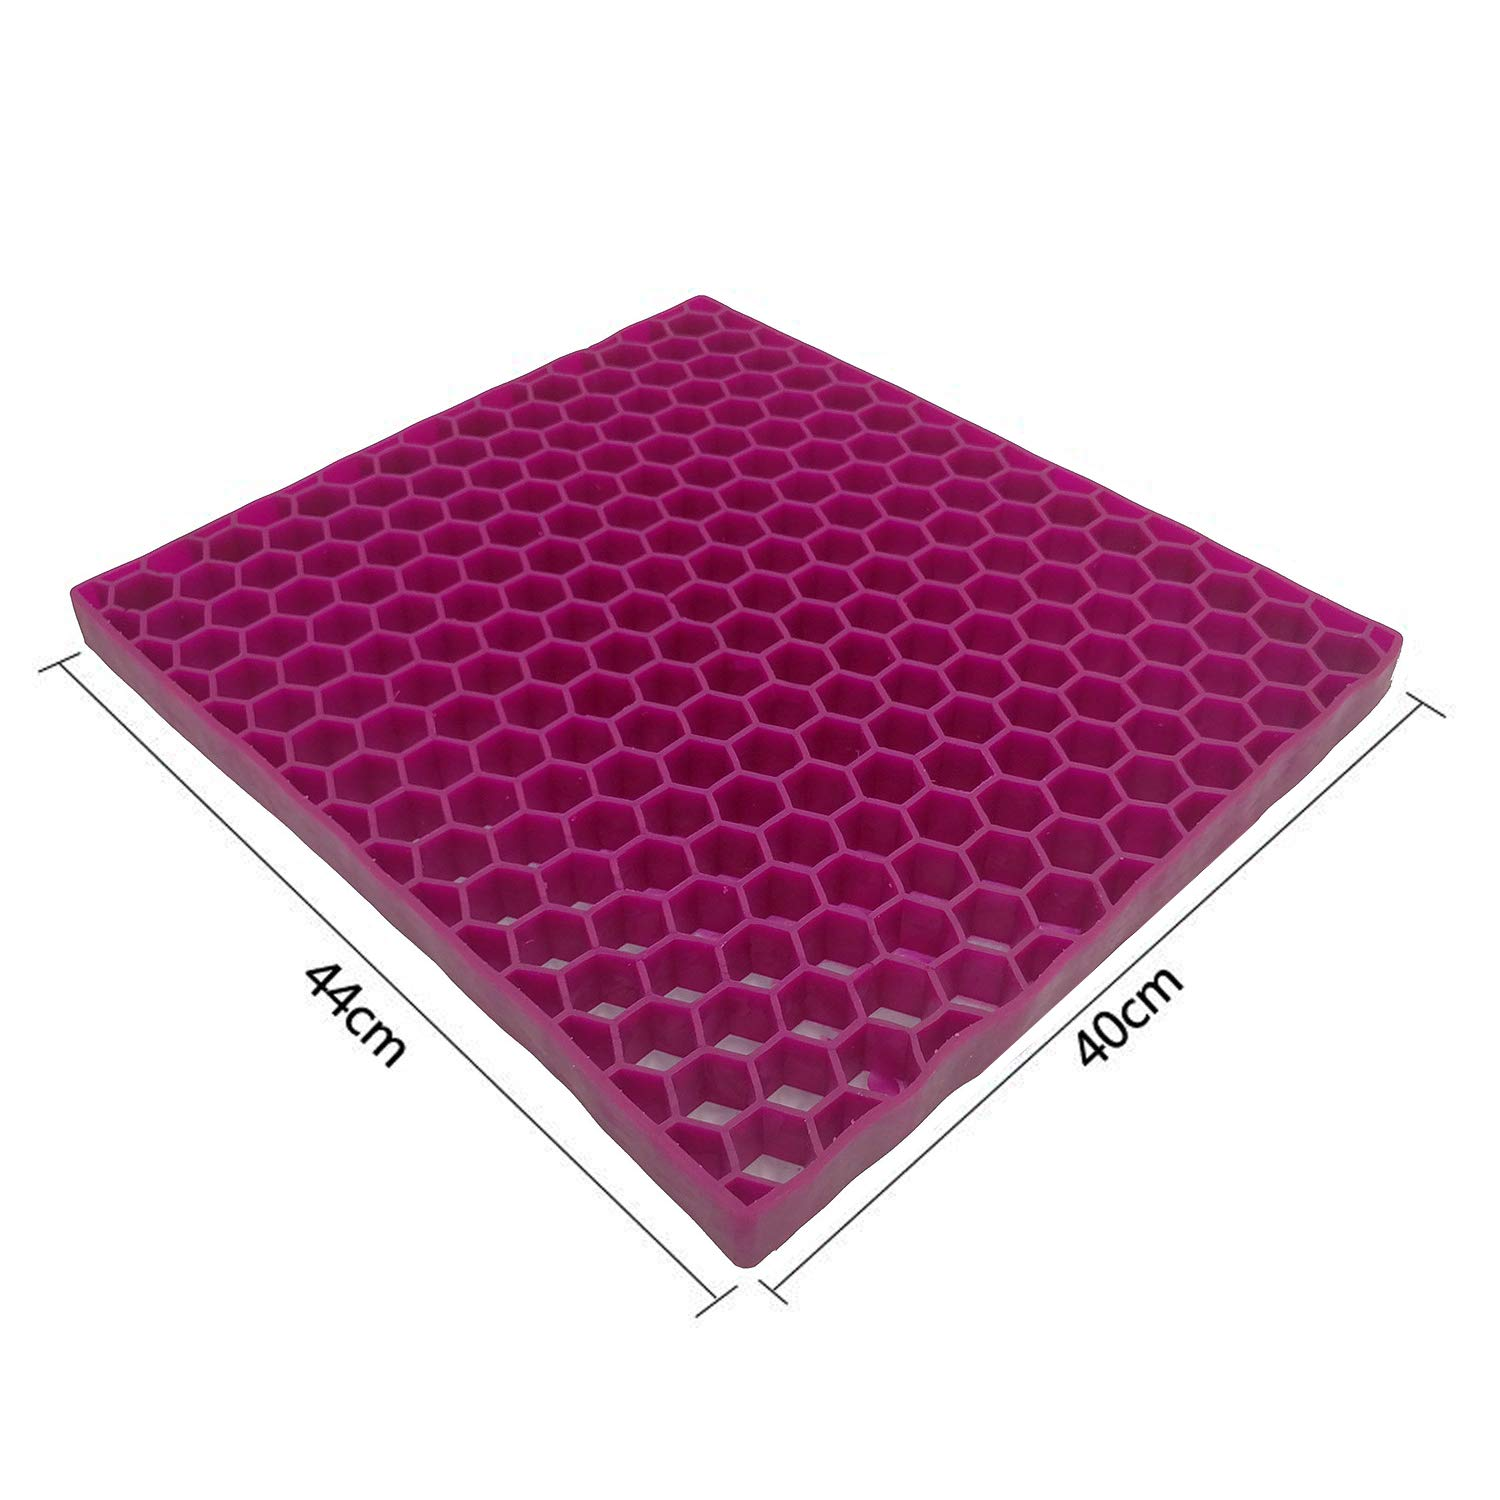 One Size GENERAL ARMOR Gel Chair Seat Cushion Orthopedic Design Seat Pad Purple Comfort Cooling Breathable